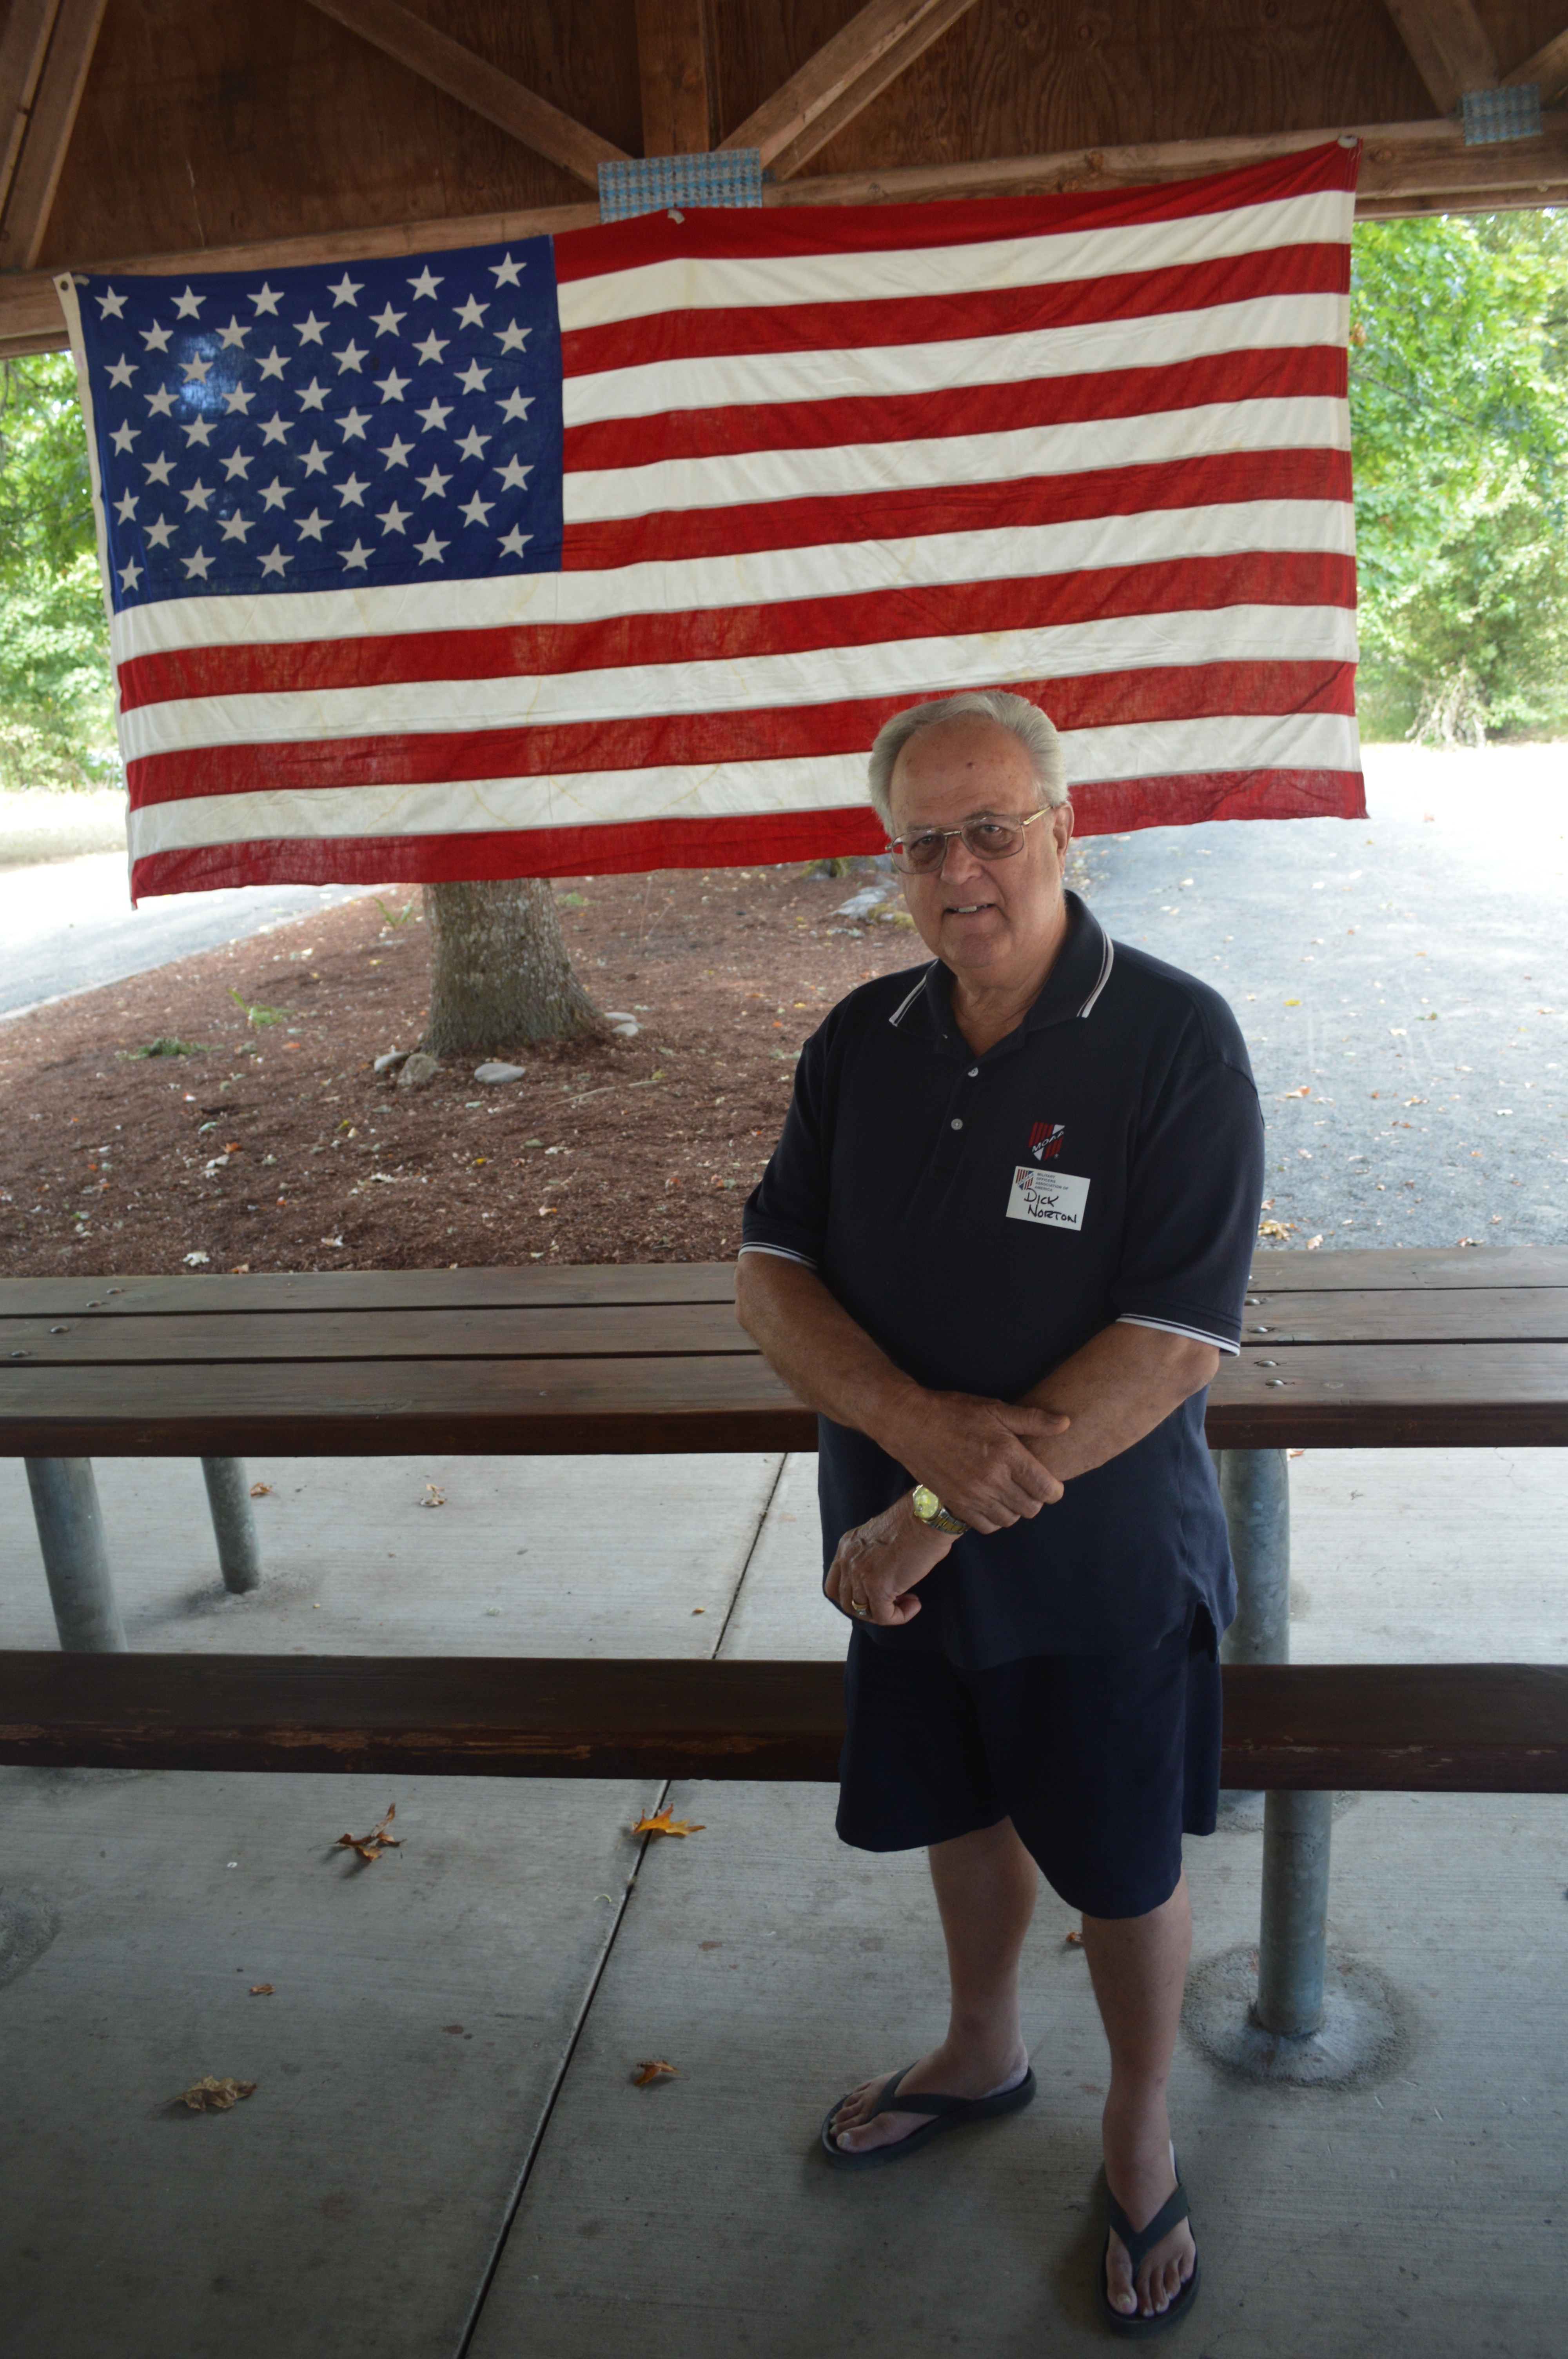 Lt. Col. Dick Norton retired from the U.S. Air Force. He is president of the Emerald Empire (Eugene) chapter of the Military Officers Association of America and gave opening remarks at the September picnic attended by chapter members and their families. Photo by Vanessa Salvia.